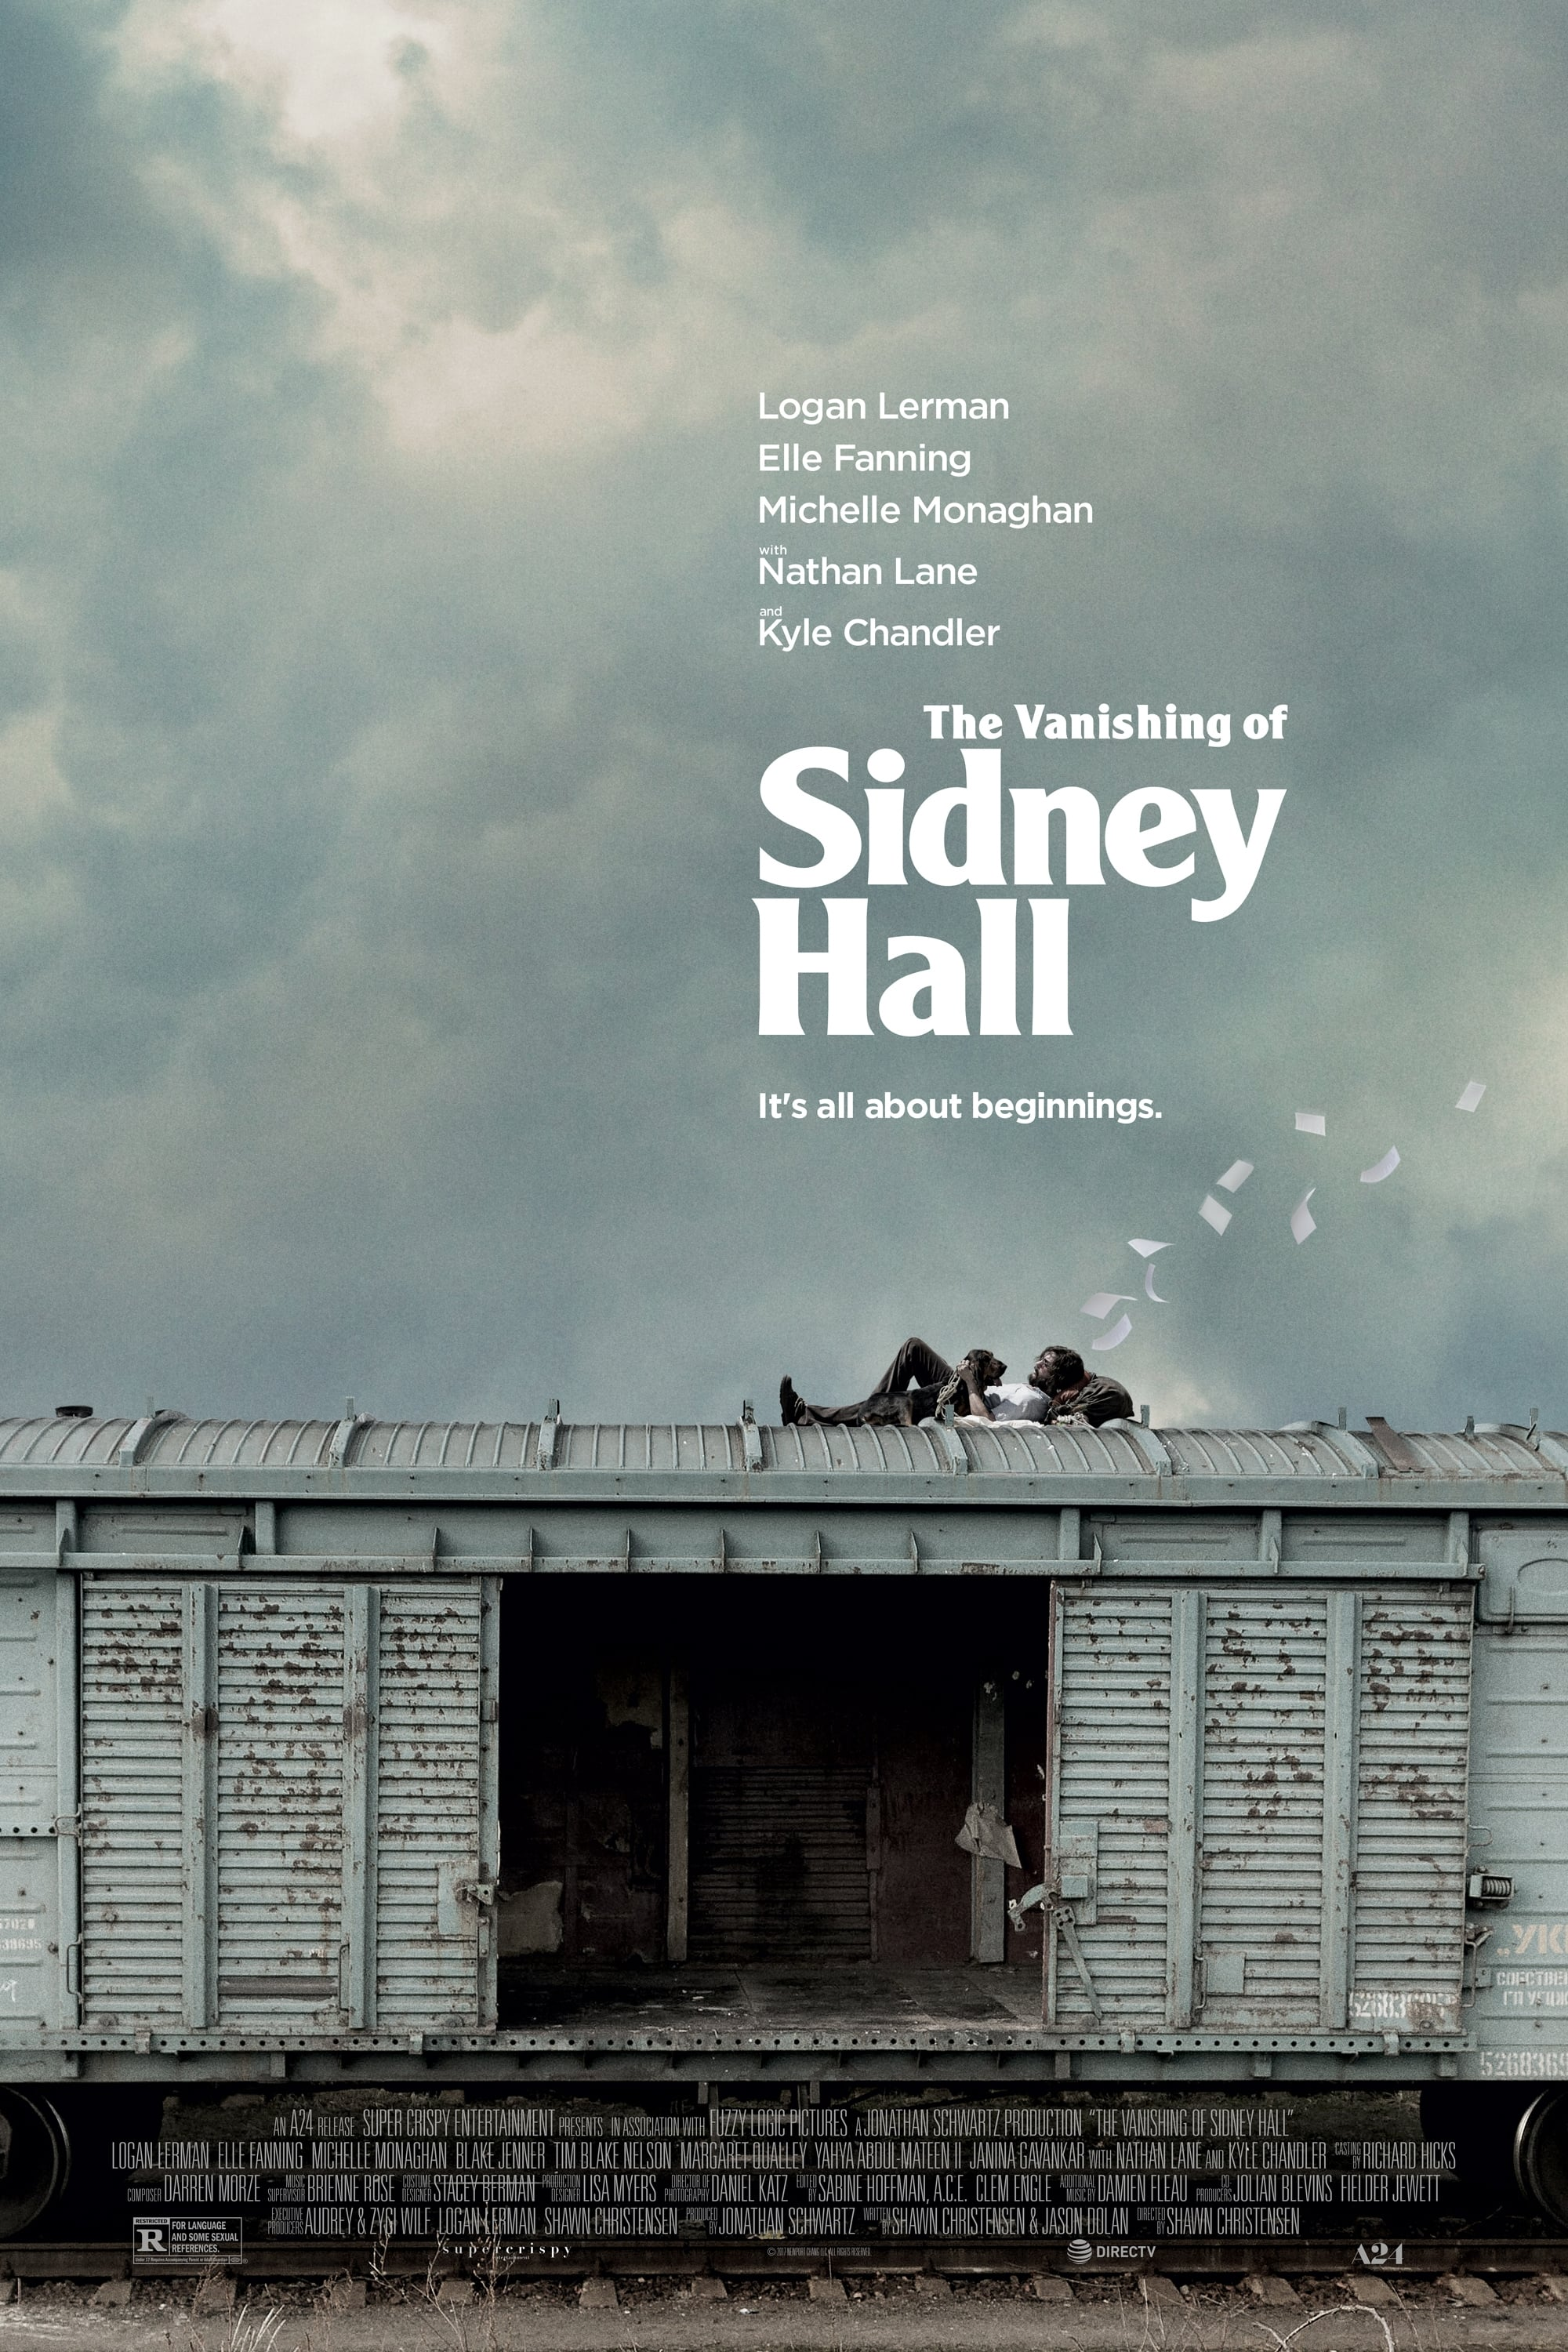 image for The Vanishing of Sidney Hall